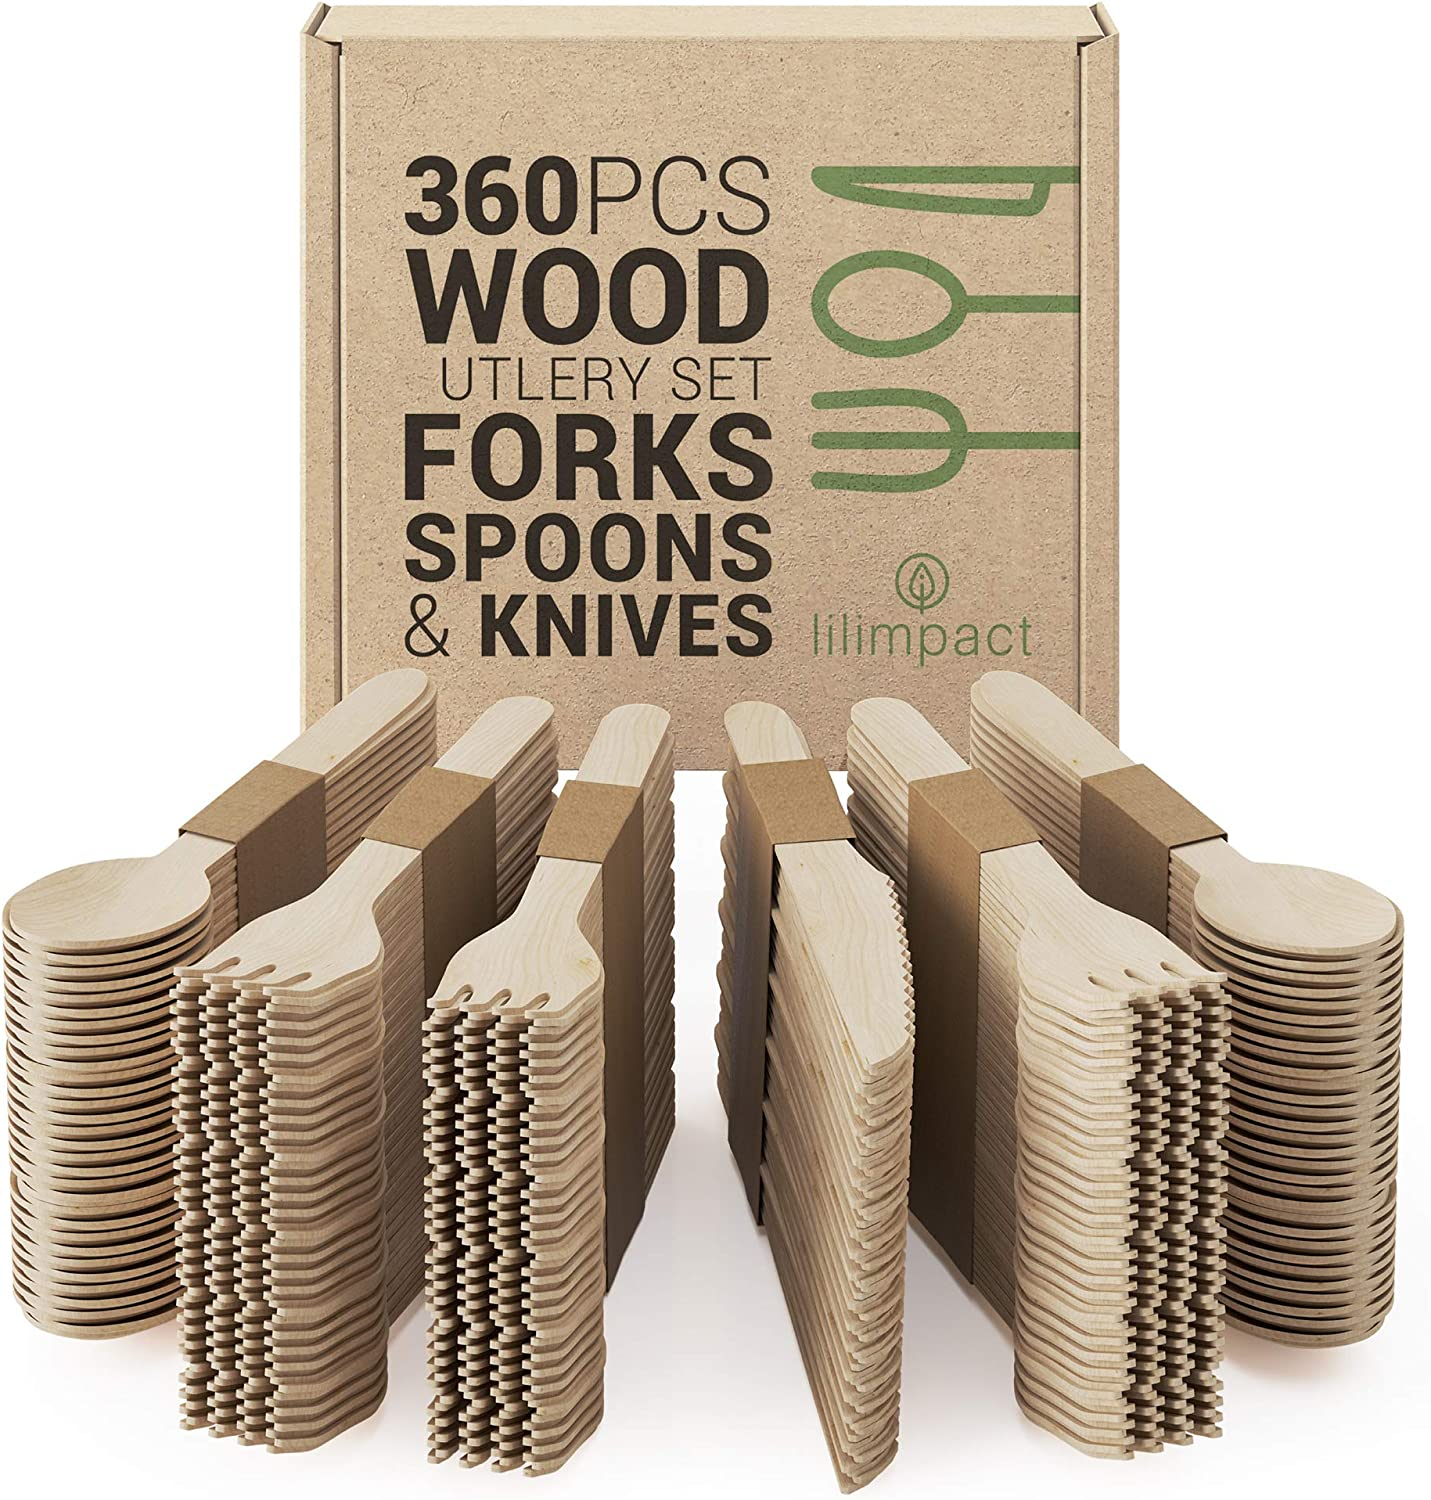 Lilimpact - Disposable Wooden Forks, Spoons, Knives Set   Alternative to Plastic Cutlery - Eco Biodegradable Replacements (360 Count - 180 Forks, 120 Spoons, 60 Knives) (360)